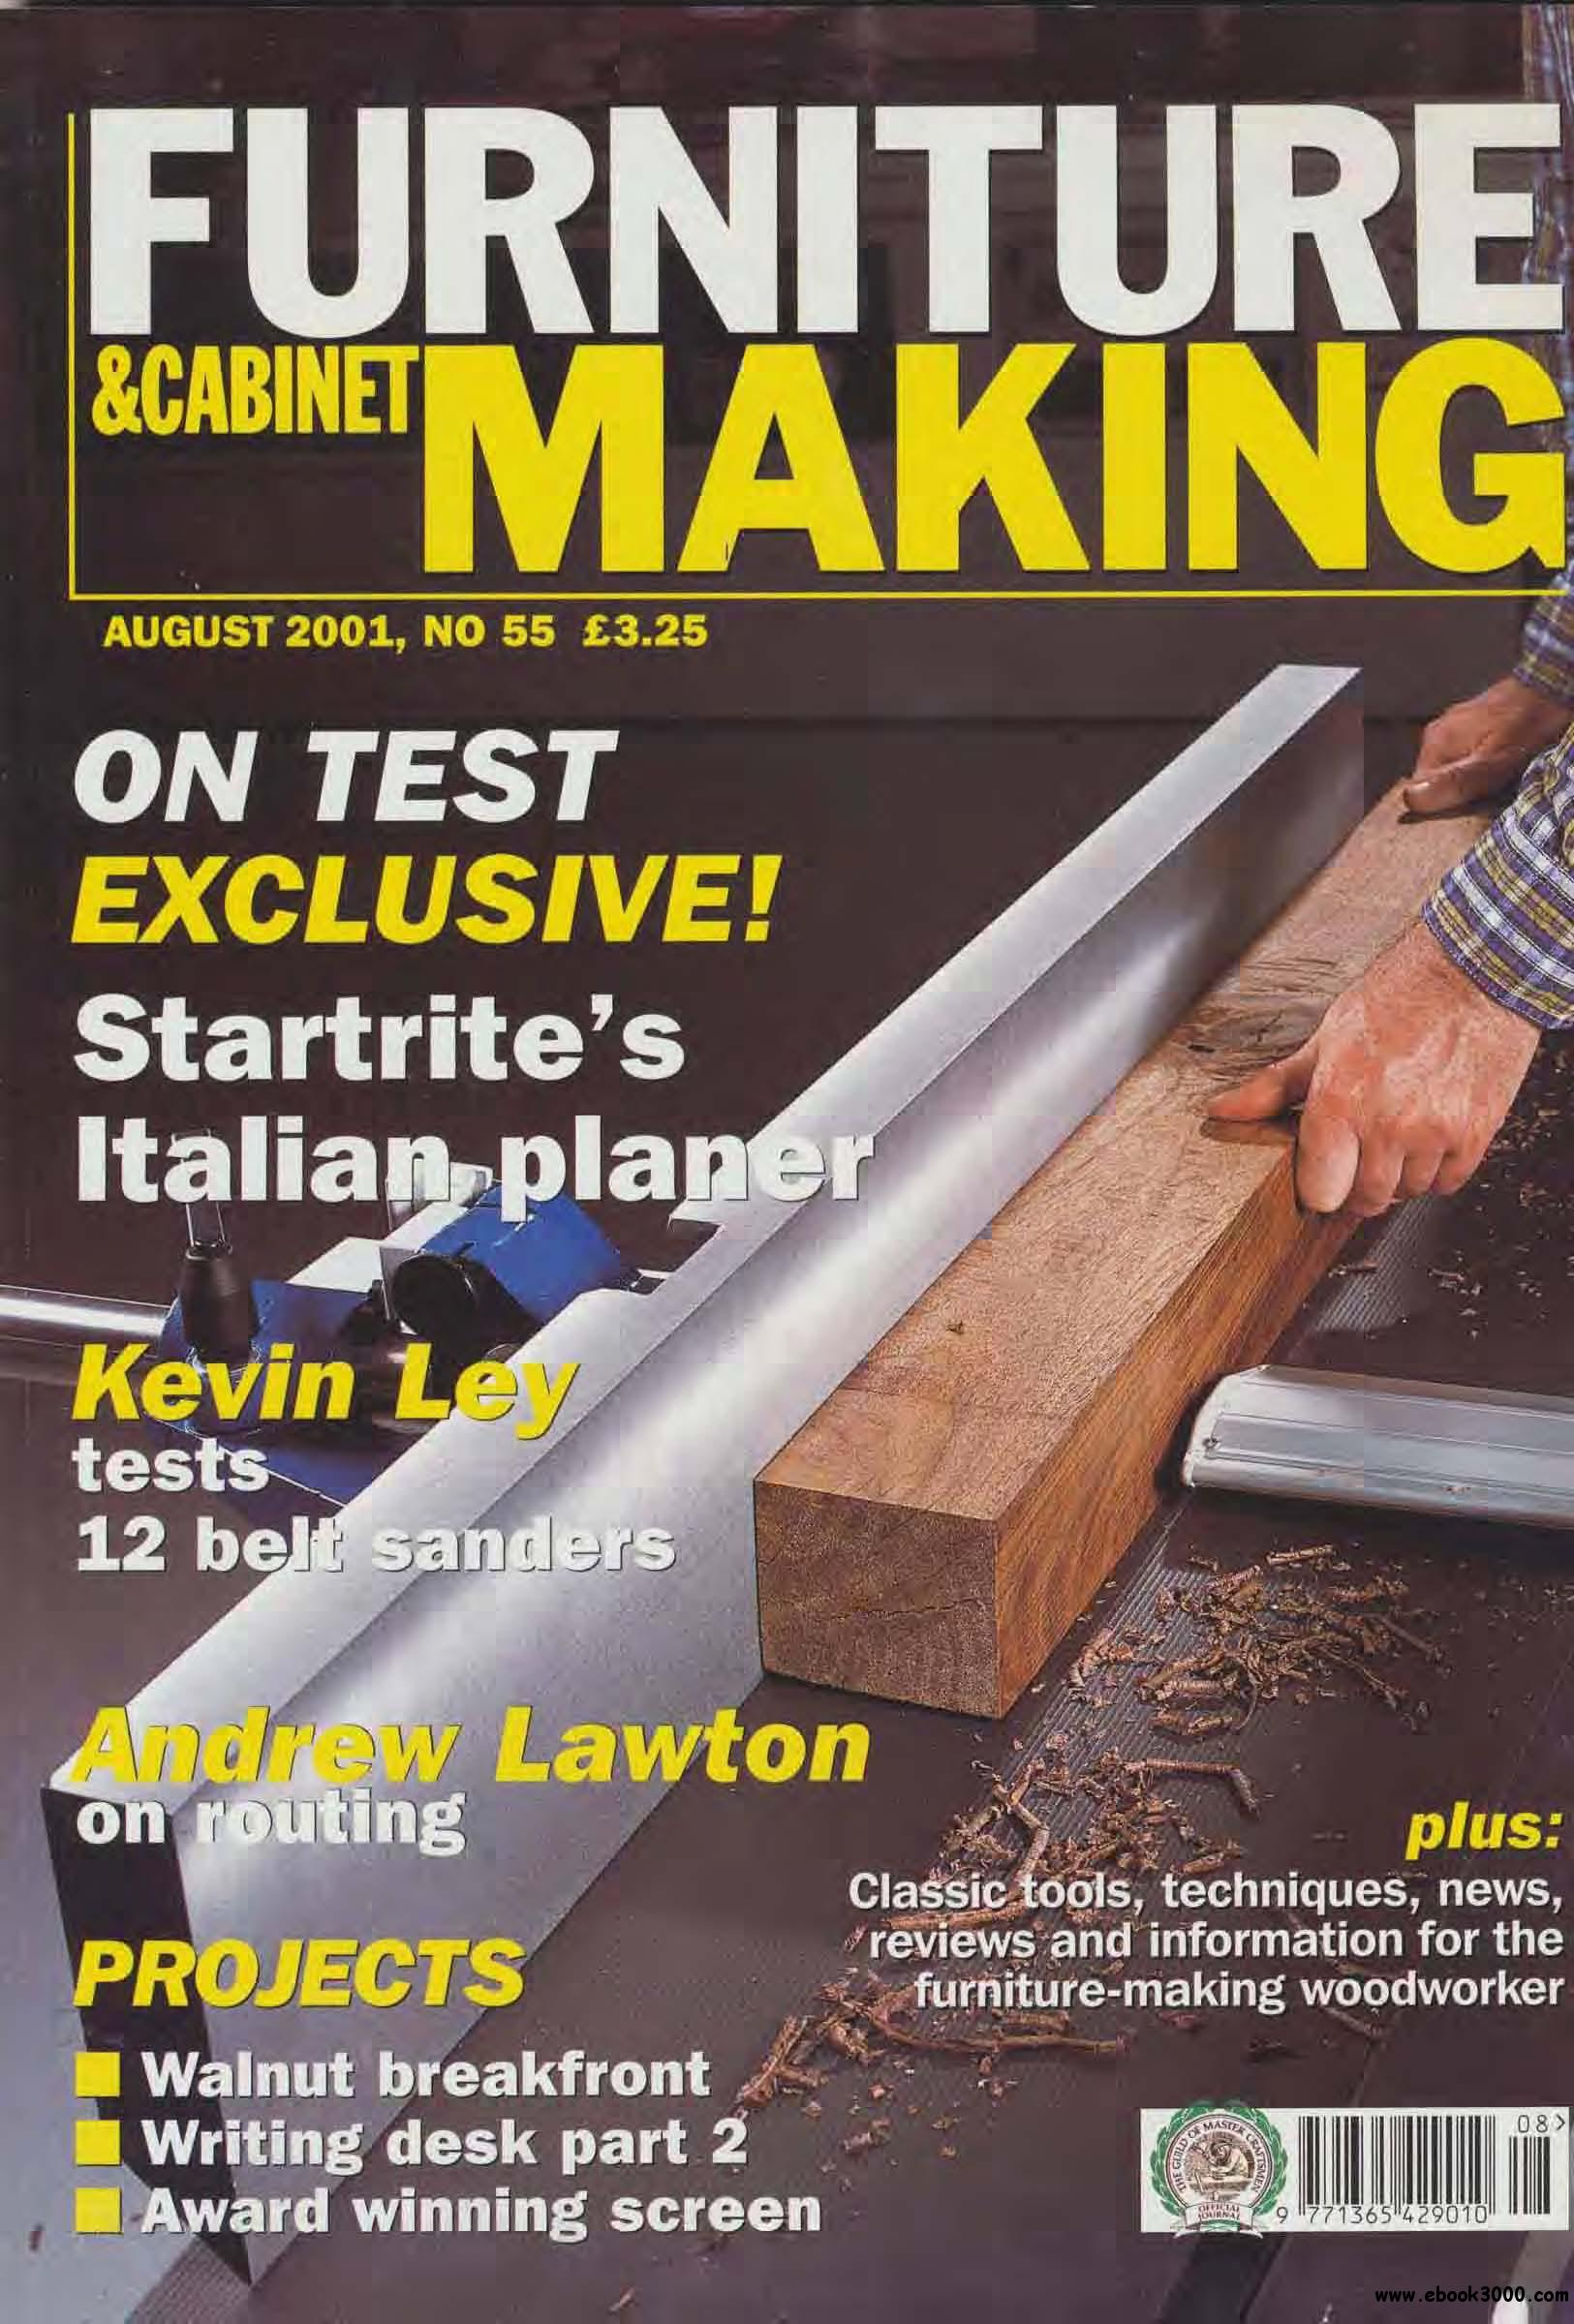 Woodworking Furniture and Cabinet Making #55 (August 2001) free download